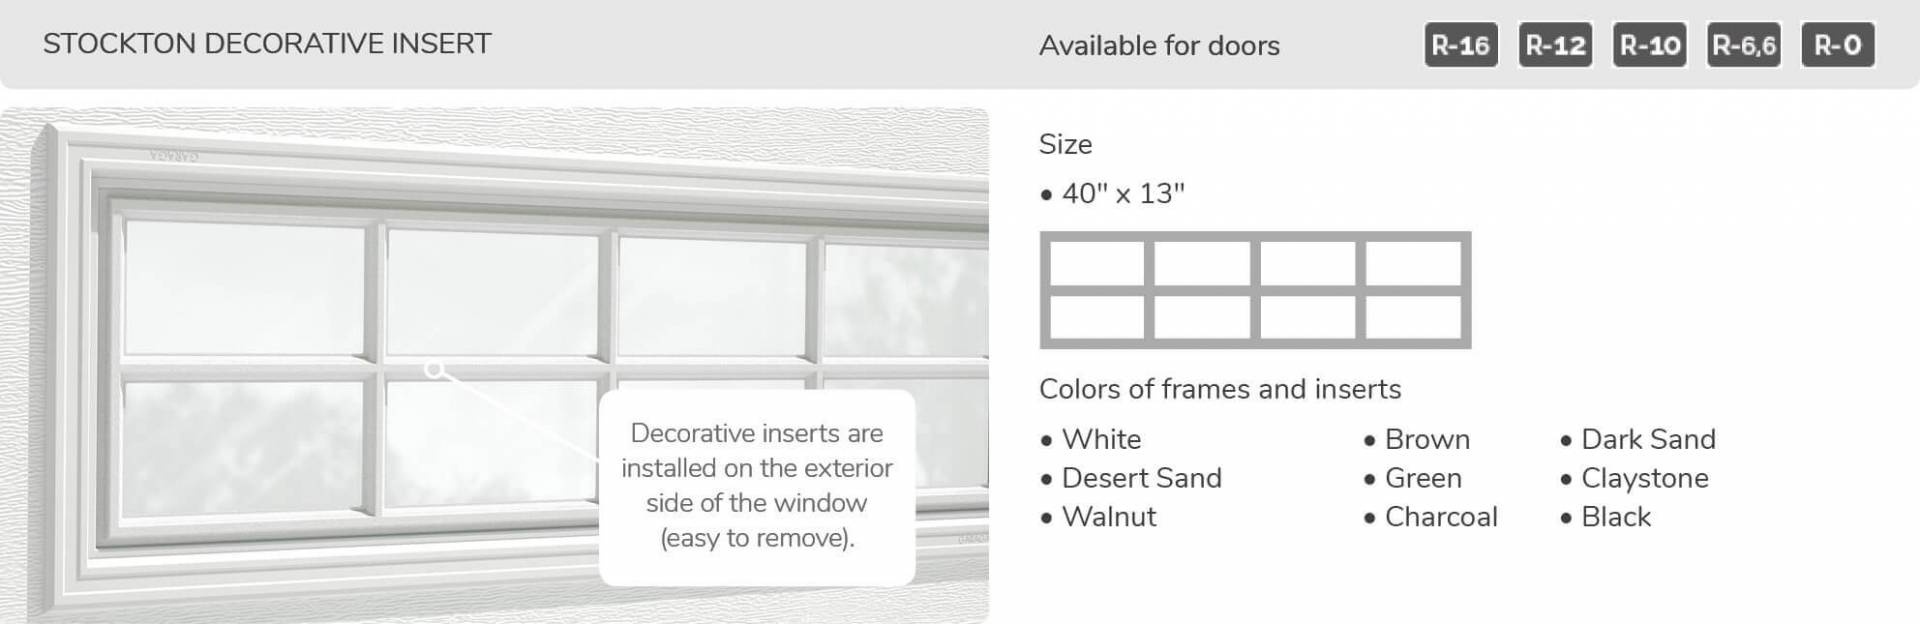 Stockton Decorative Insert, 40' x 13', available for doors: R-16, R-12, R-10, R-6.6, R-0